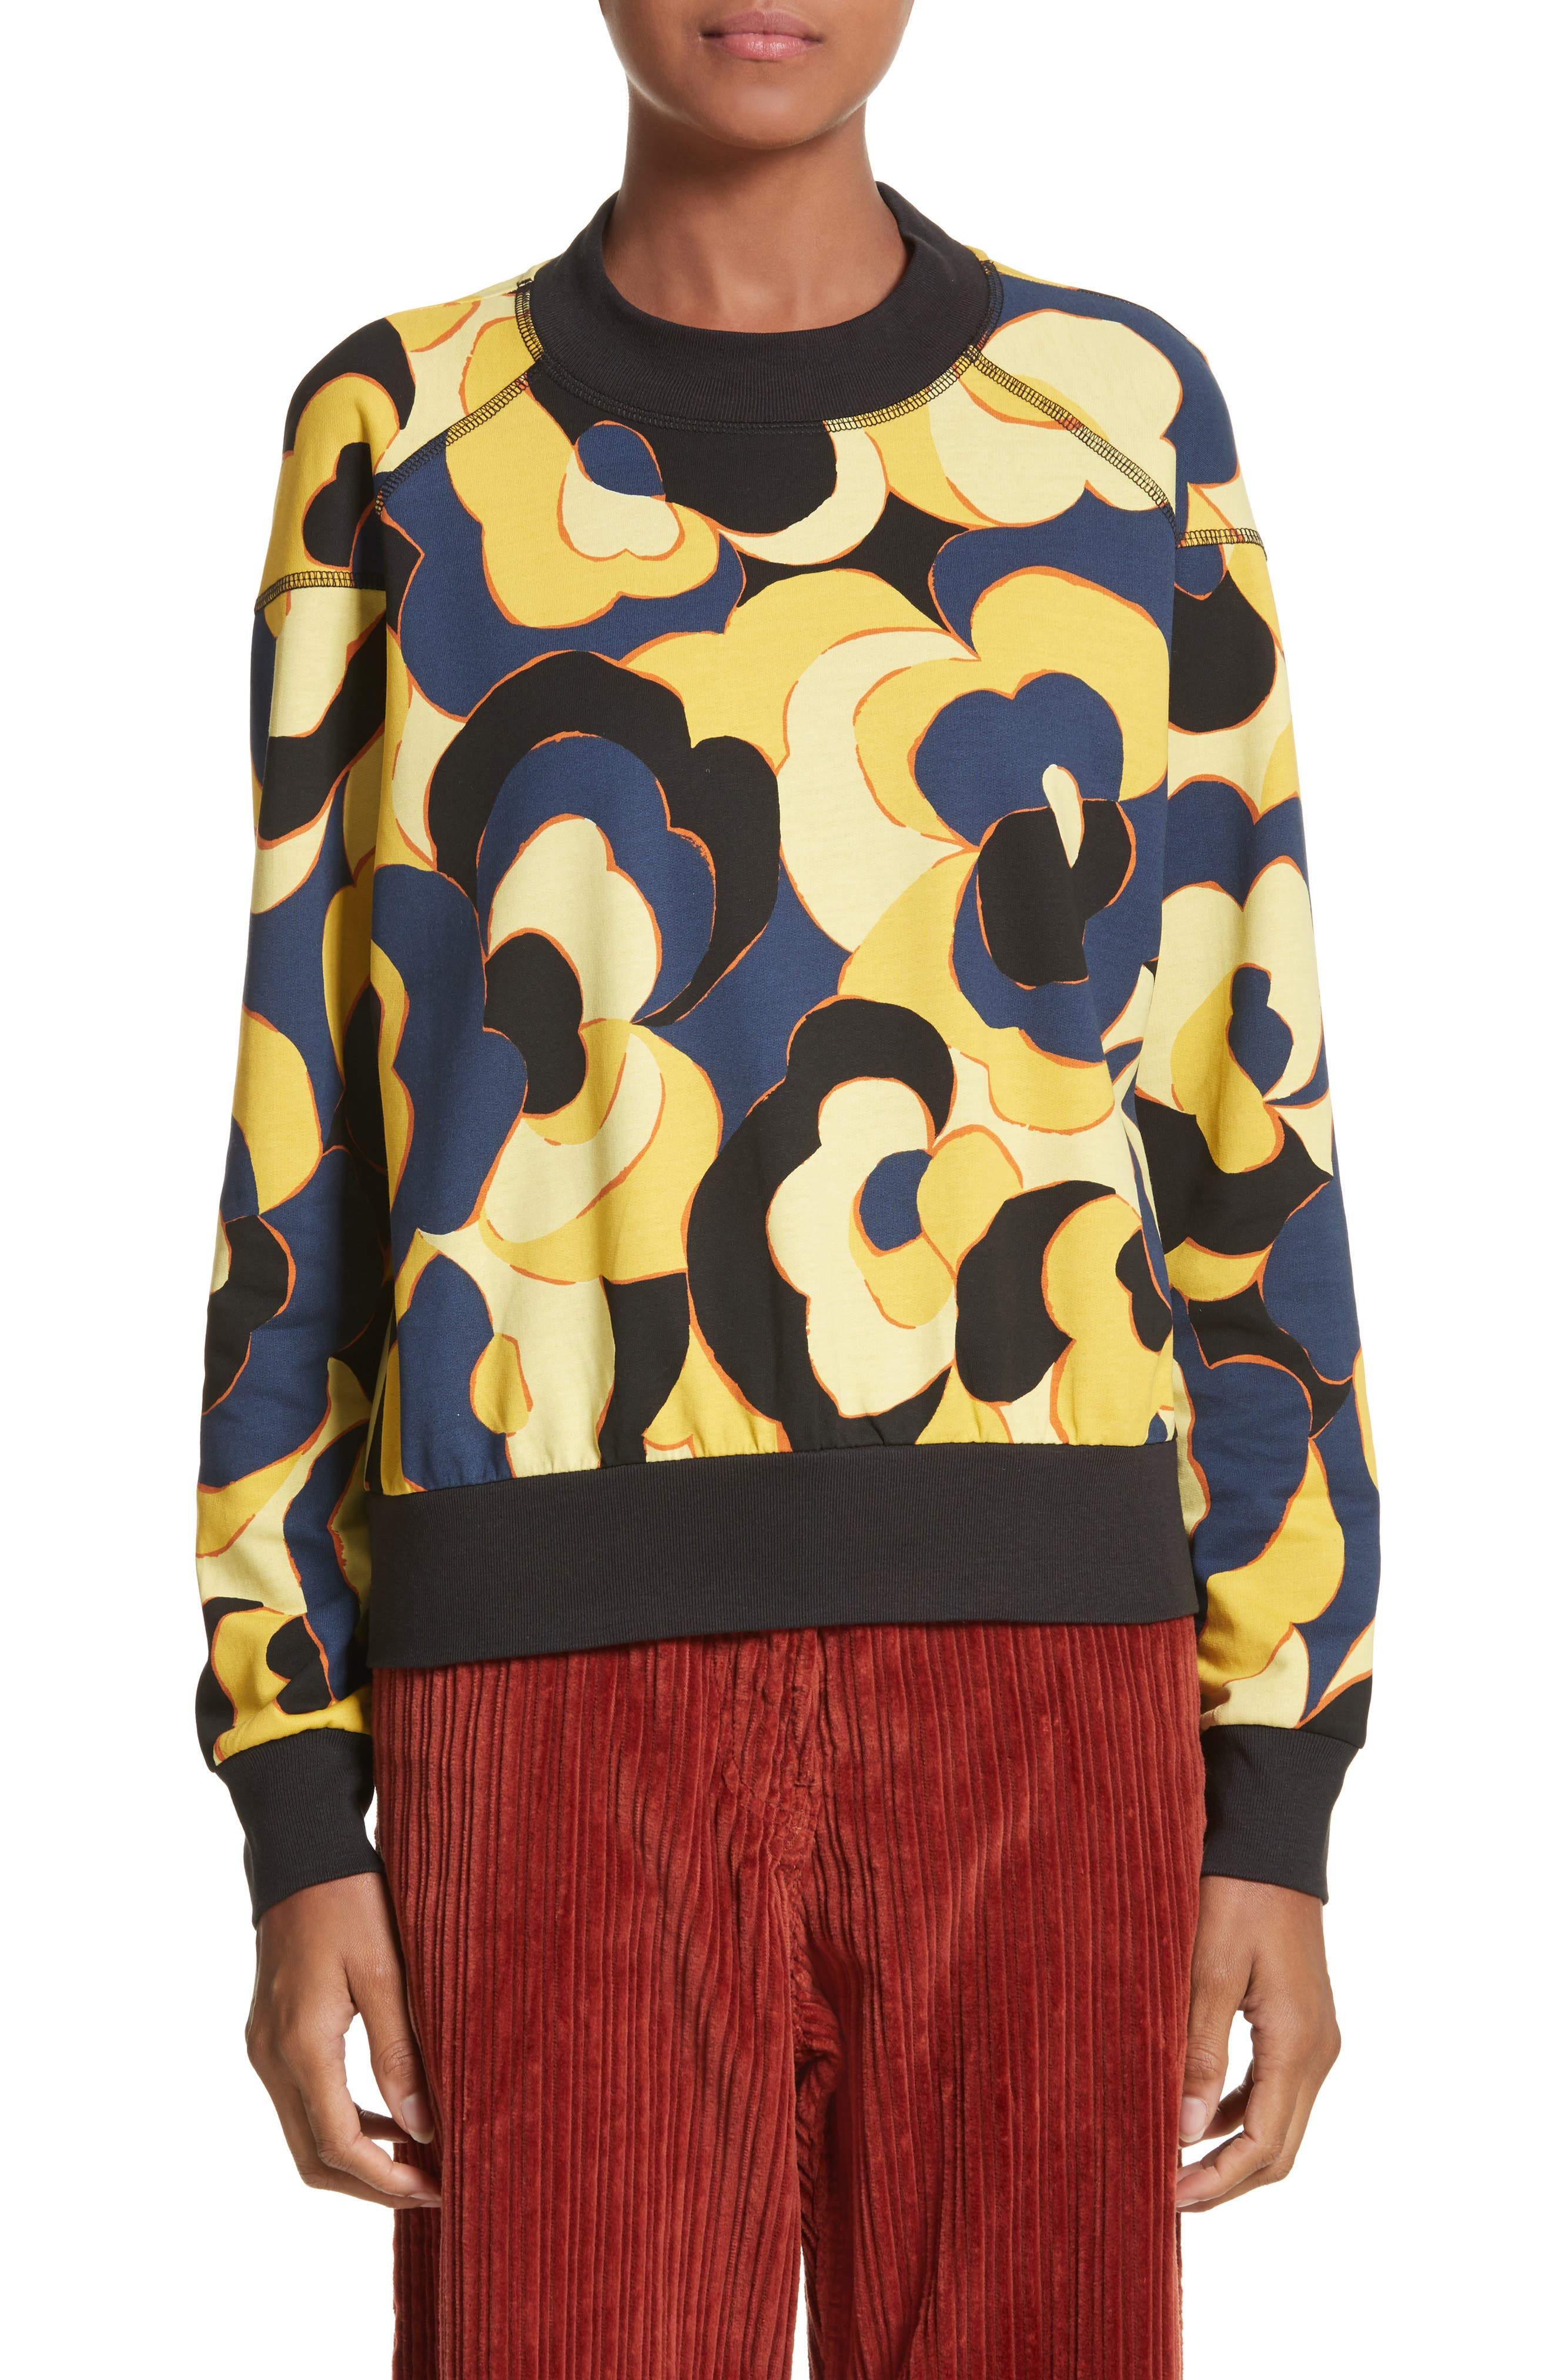 Dries Van Noten Hardmon Print Sweatshirt